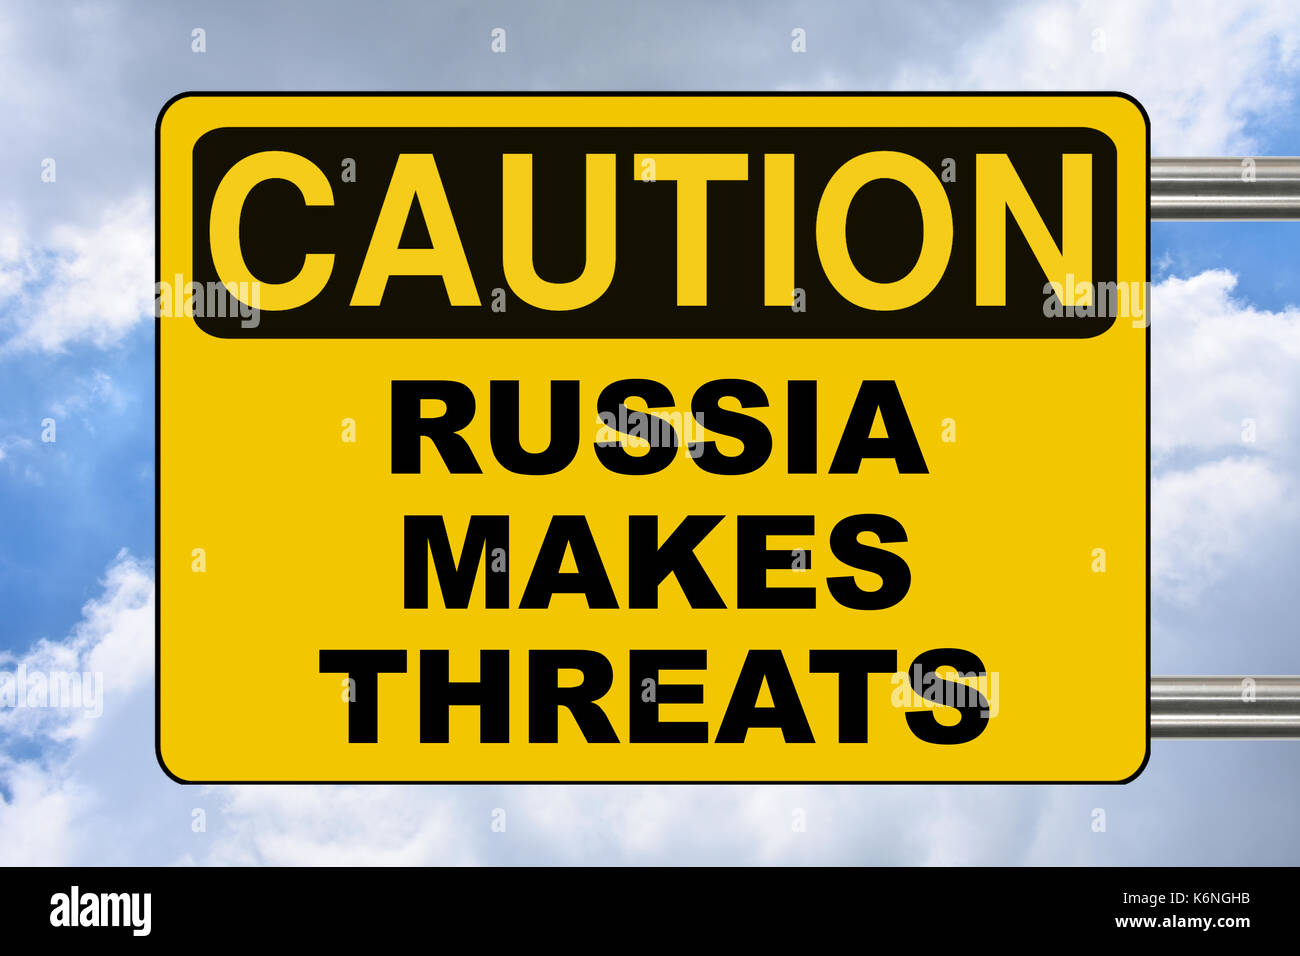 Russia makes threats, political yellow road sign - Stock Image